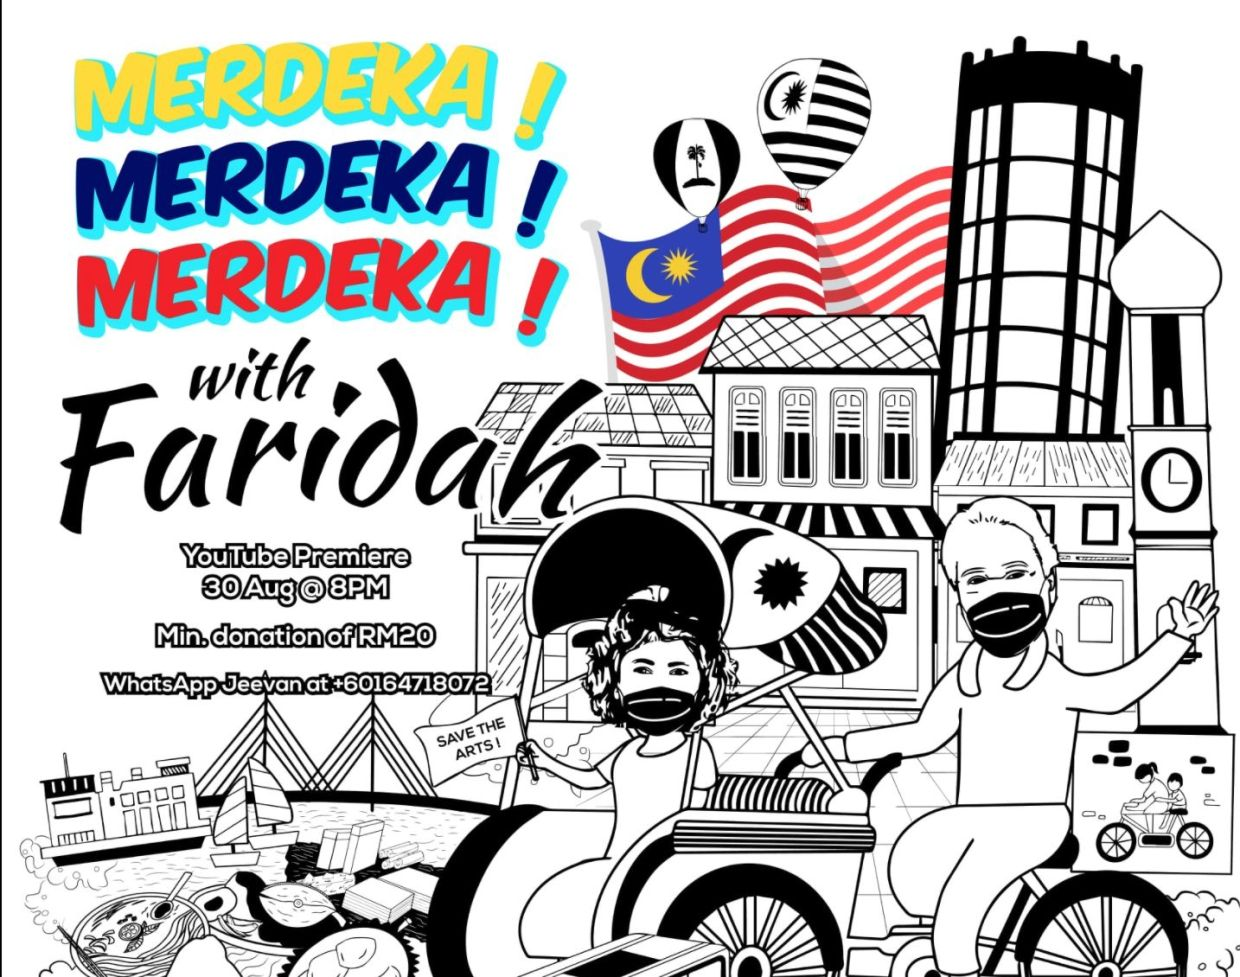 Catch this Merdeka edition variety show hosted by Datuk Faridah Merican. Photo: Handout